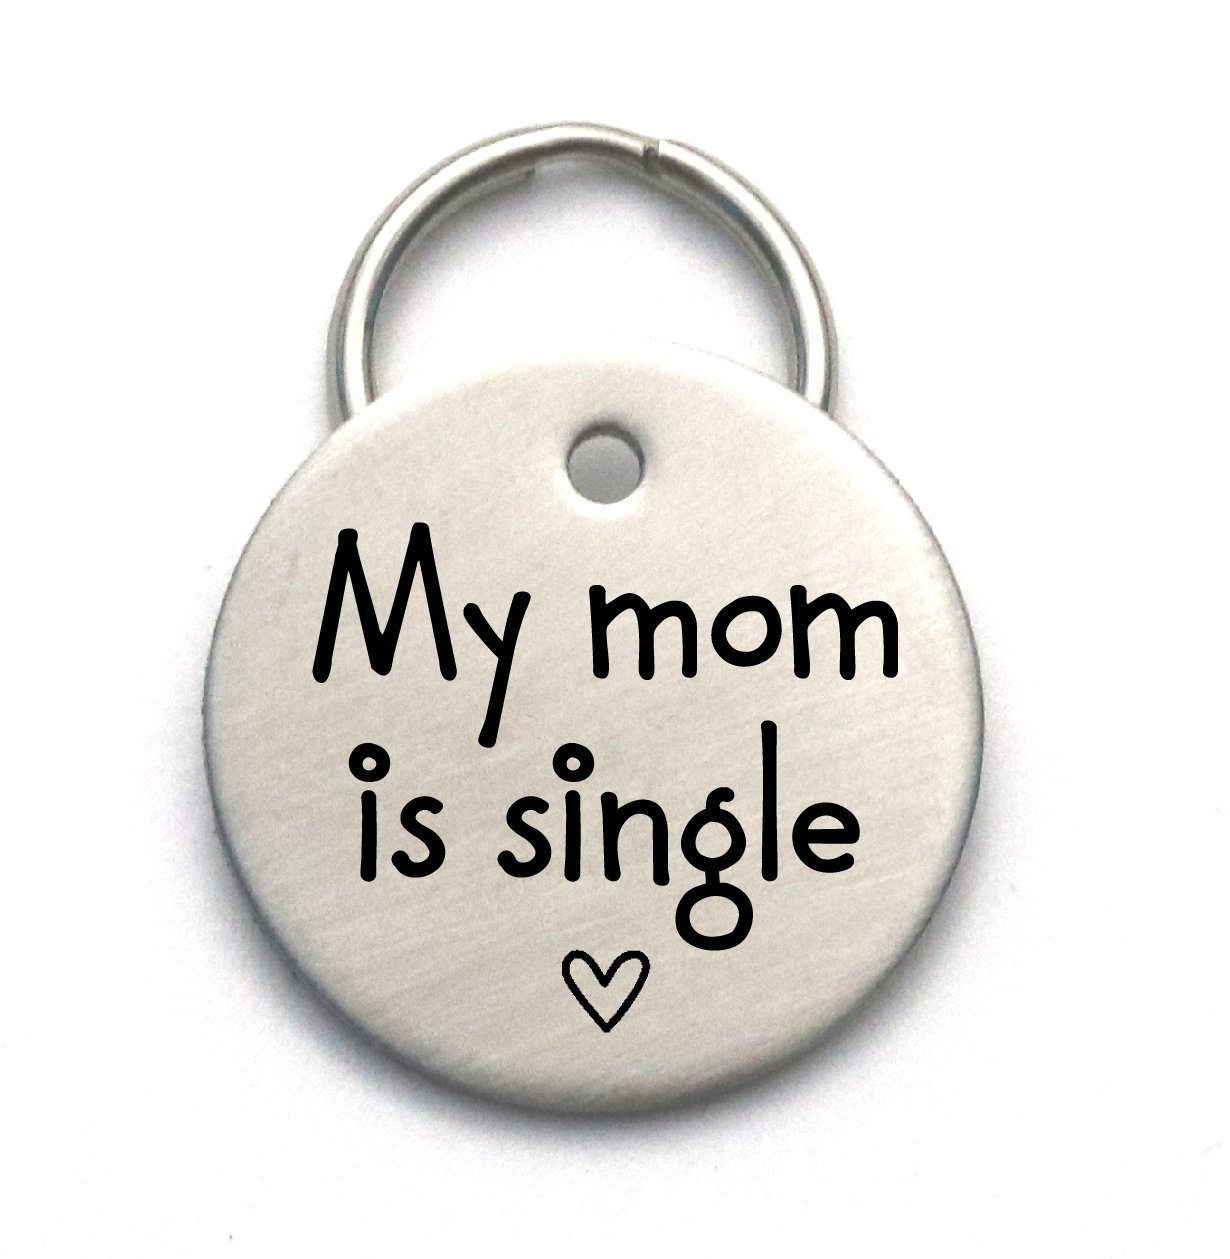 My Mom is Single - Unique Customized Handmade Pet ID Tag With Heart for Dog or Cat - Mum or Dad